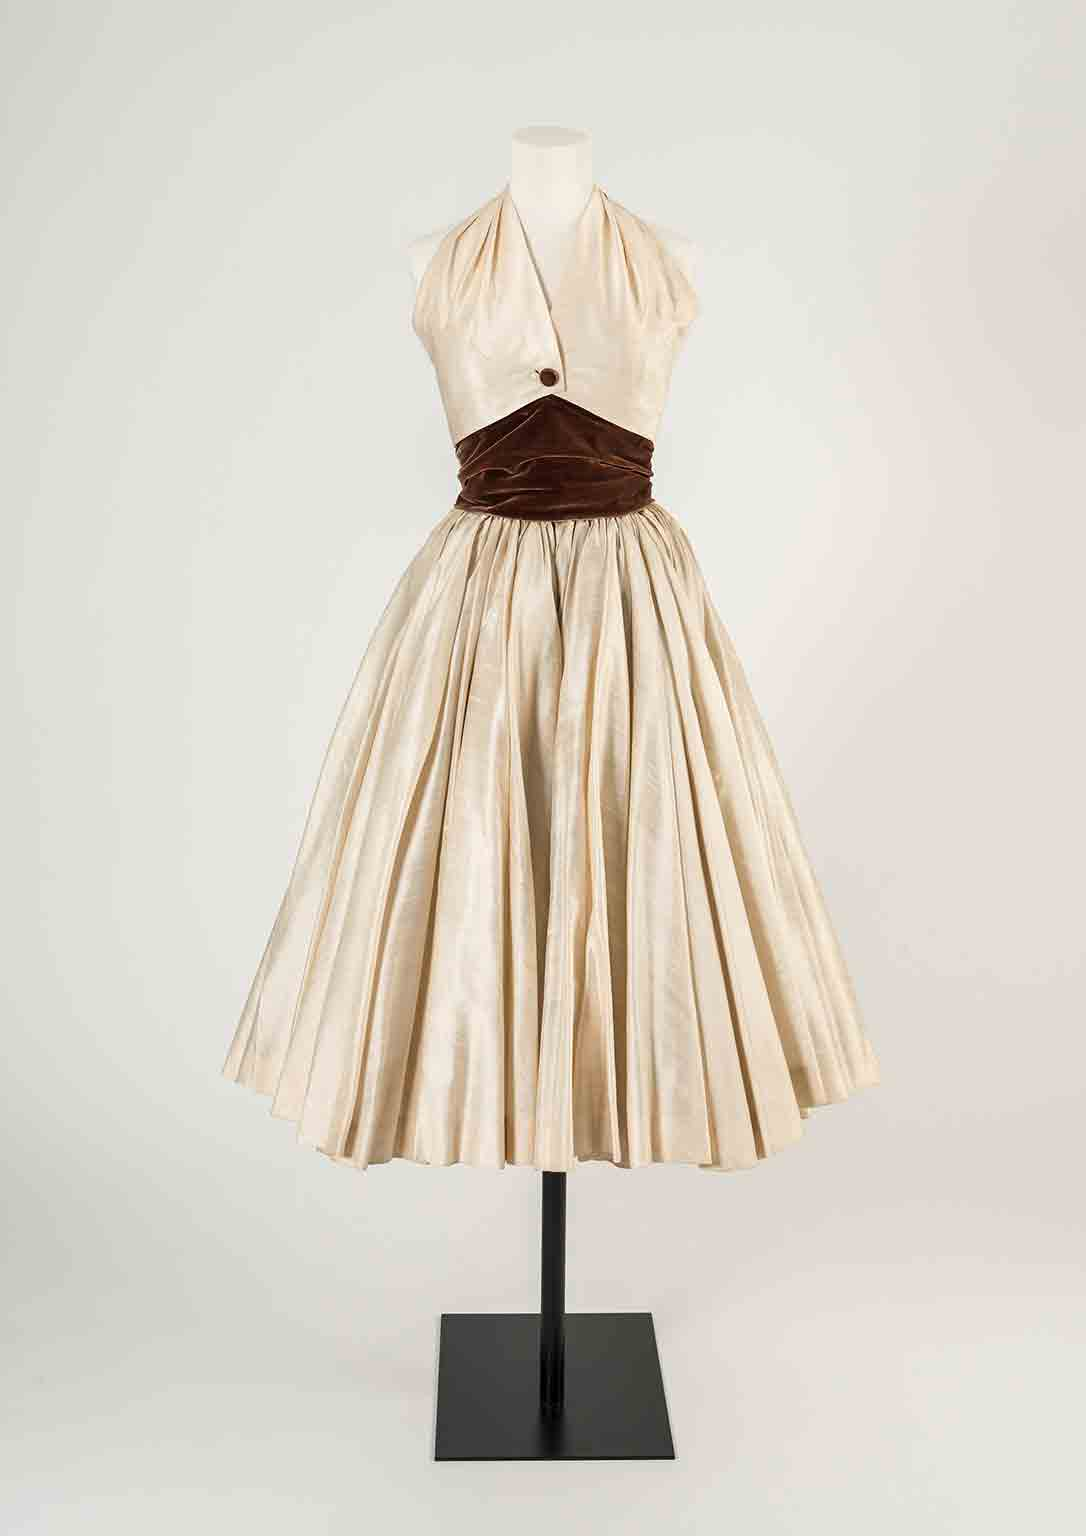 A History Of Fashion In 100 Objects Exhibition At Fashion